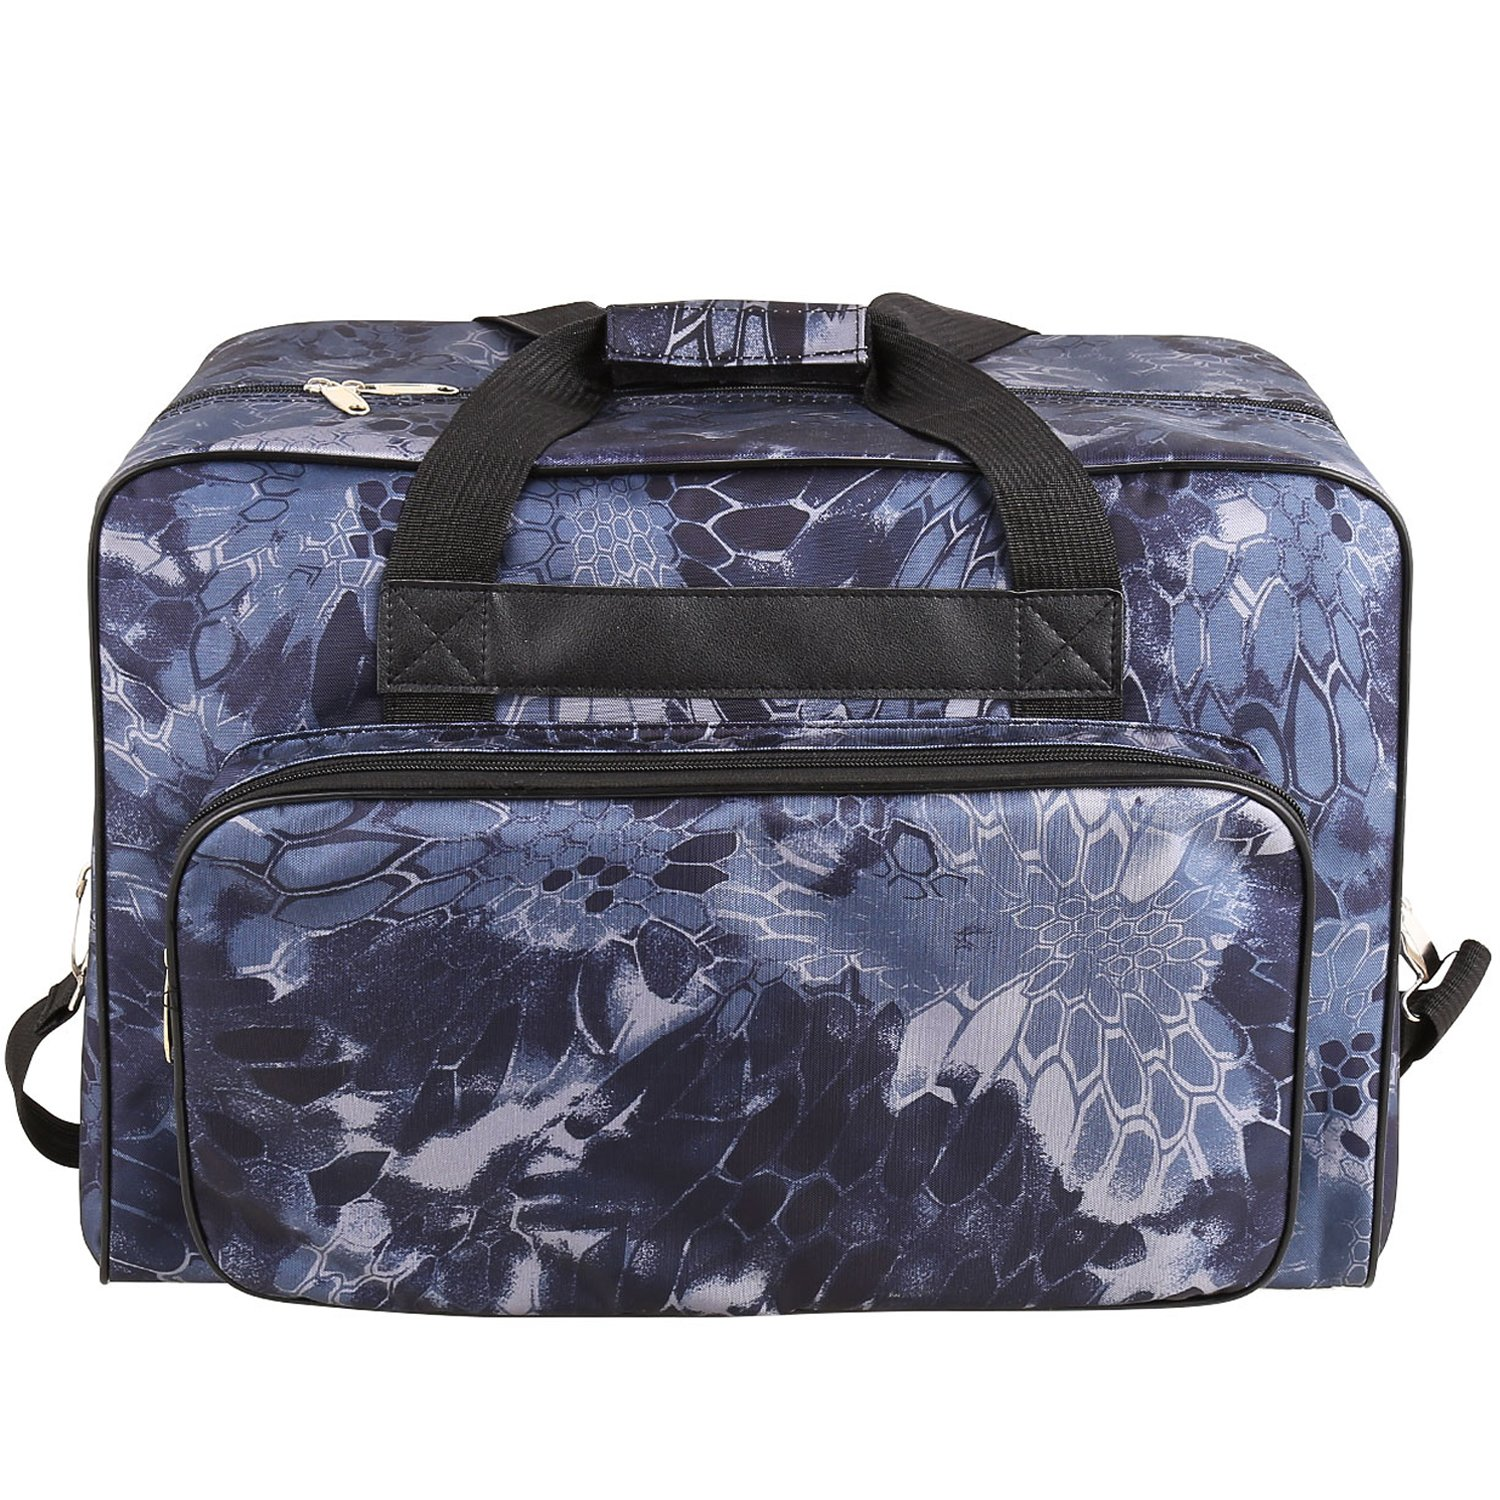 Homeself Universal Nylon Carry Bag Universal Waterproof Padded Storage Cover Carrying Case with Pockets and Handles Sewing Machine Tote Bag Blue